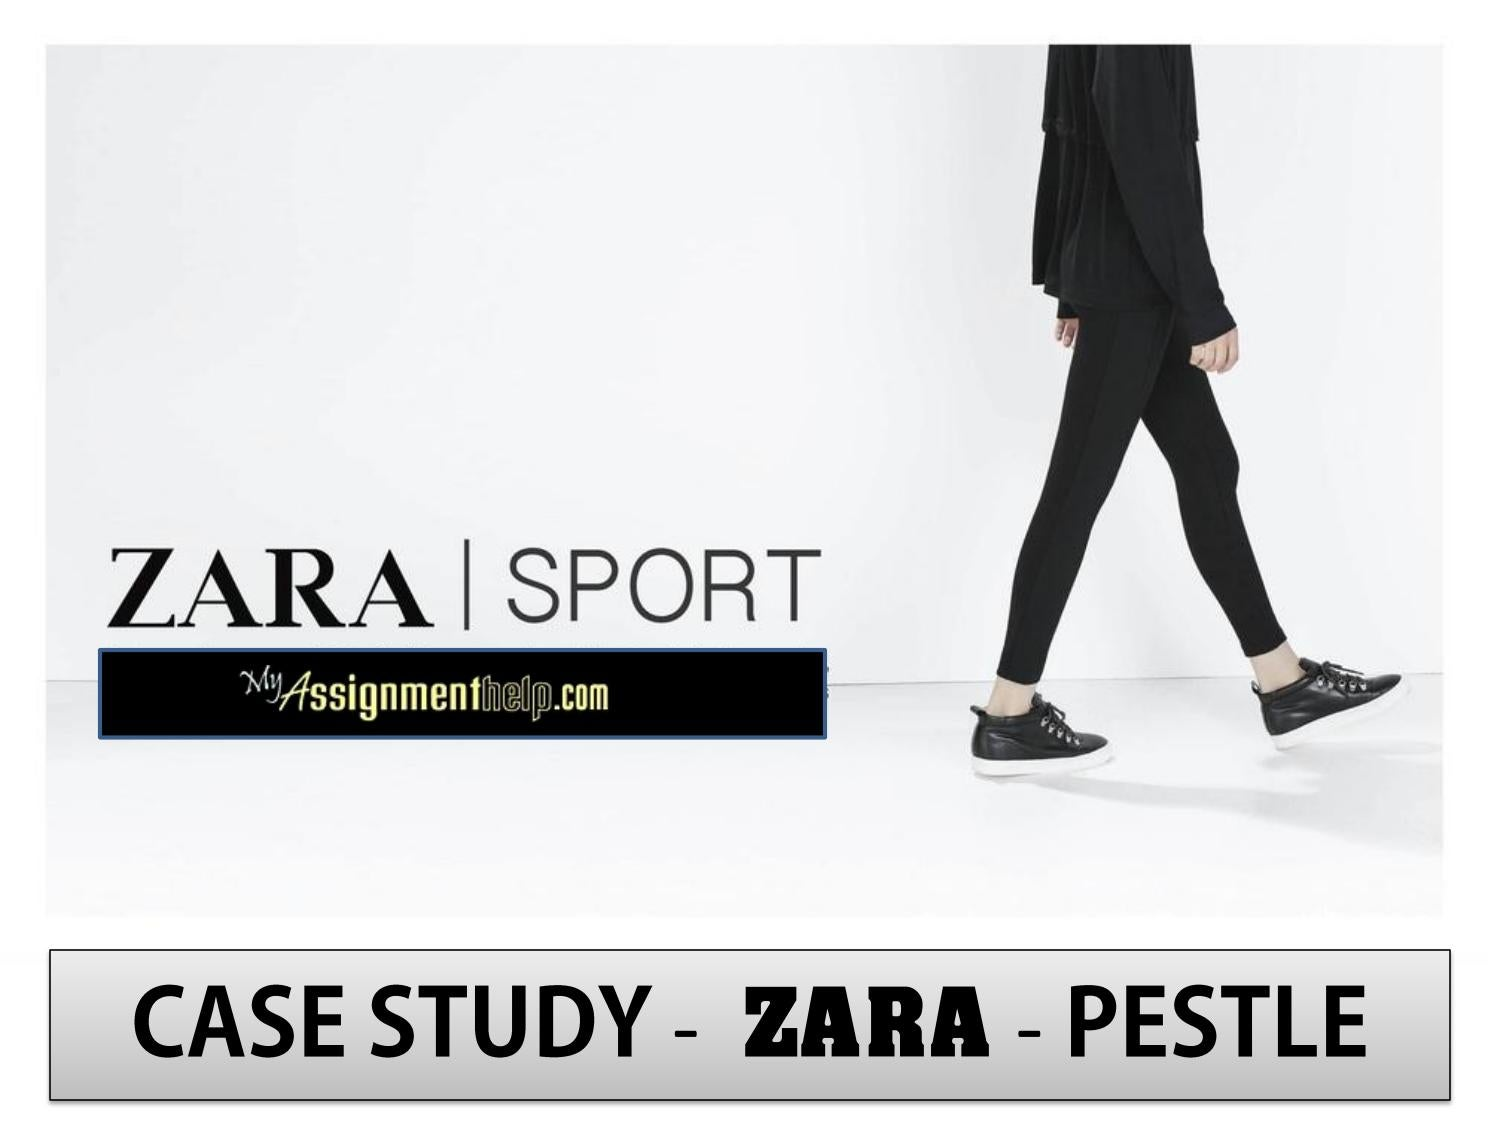 zara case study pestle swot analysis by robert hook issuu